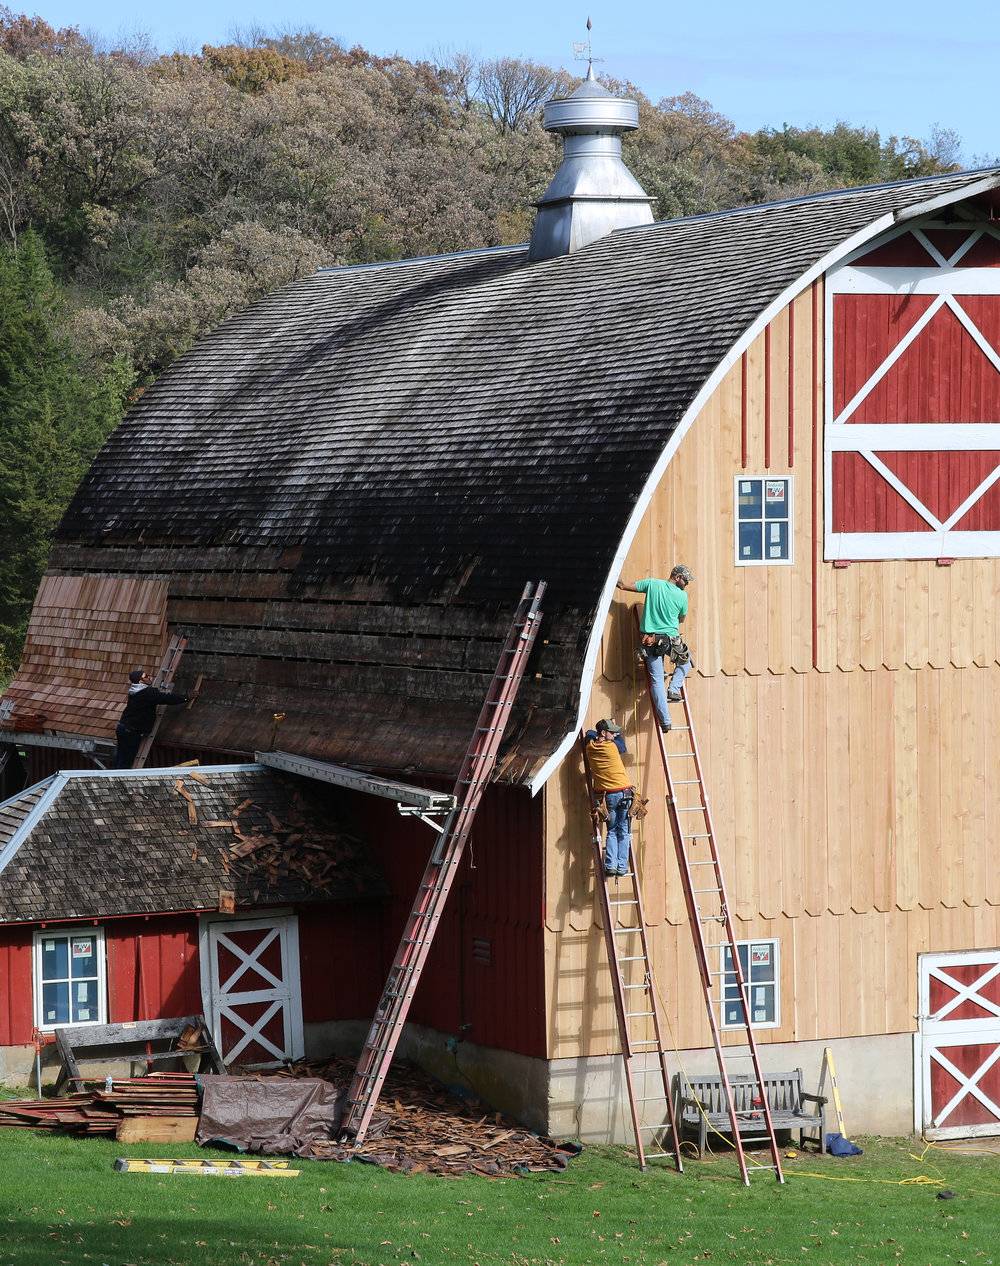 Crews spent plenty of time working atop ladders during the renovation of the historic barn at Heritage Farm this past October.